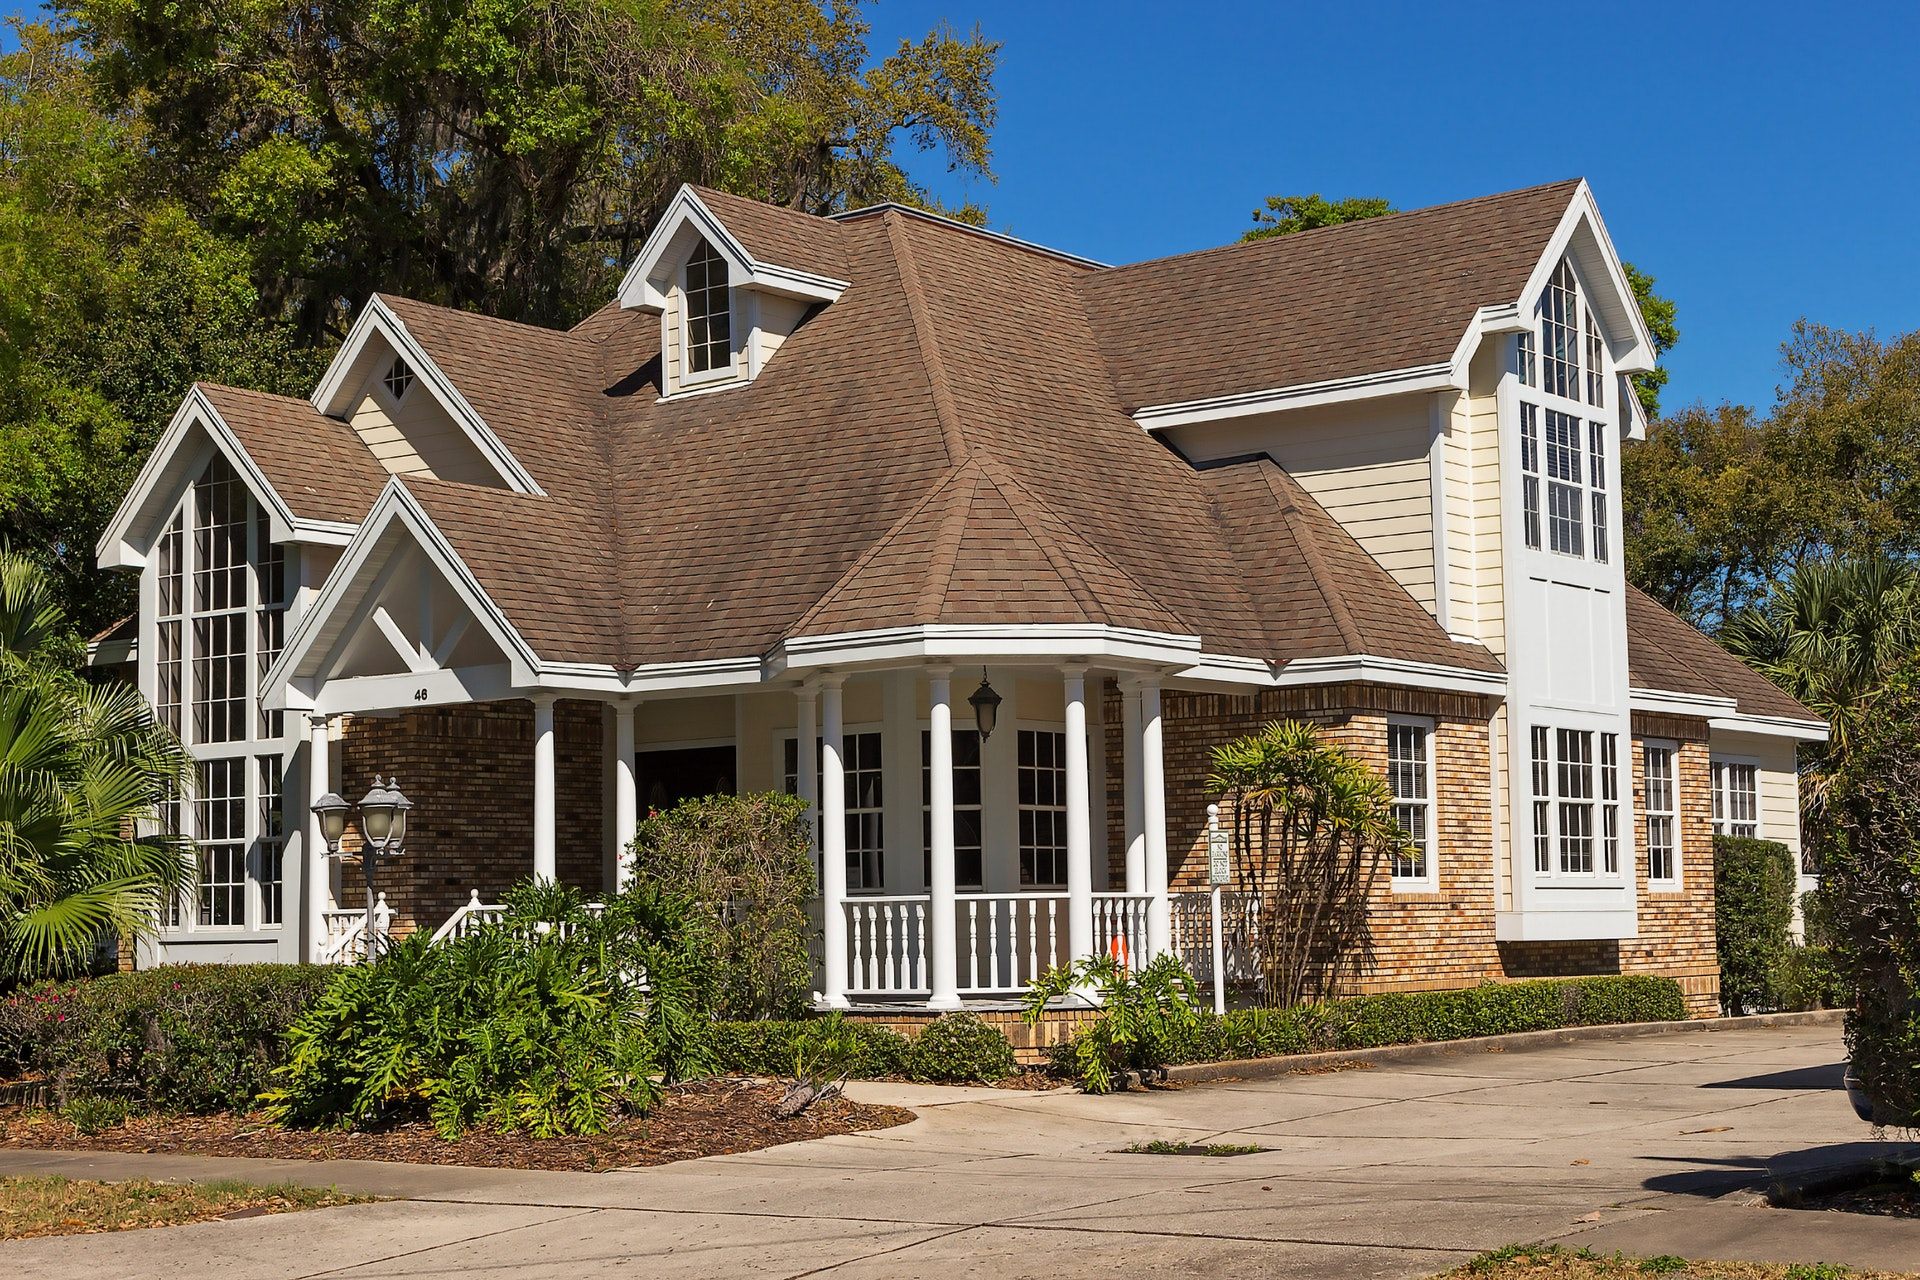 Roofing tips and tricks that every homeowner should know